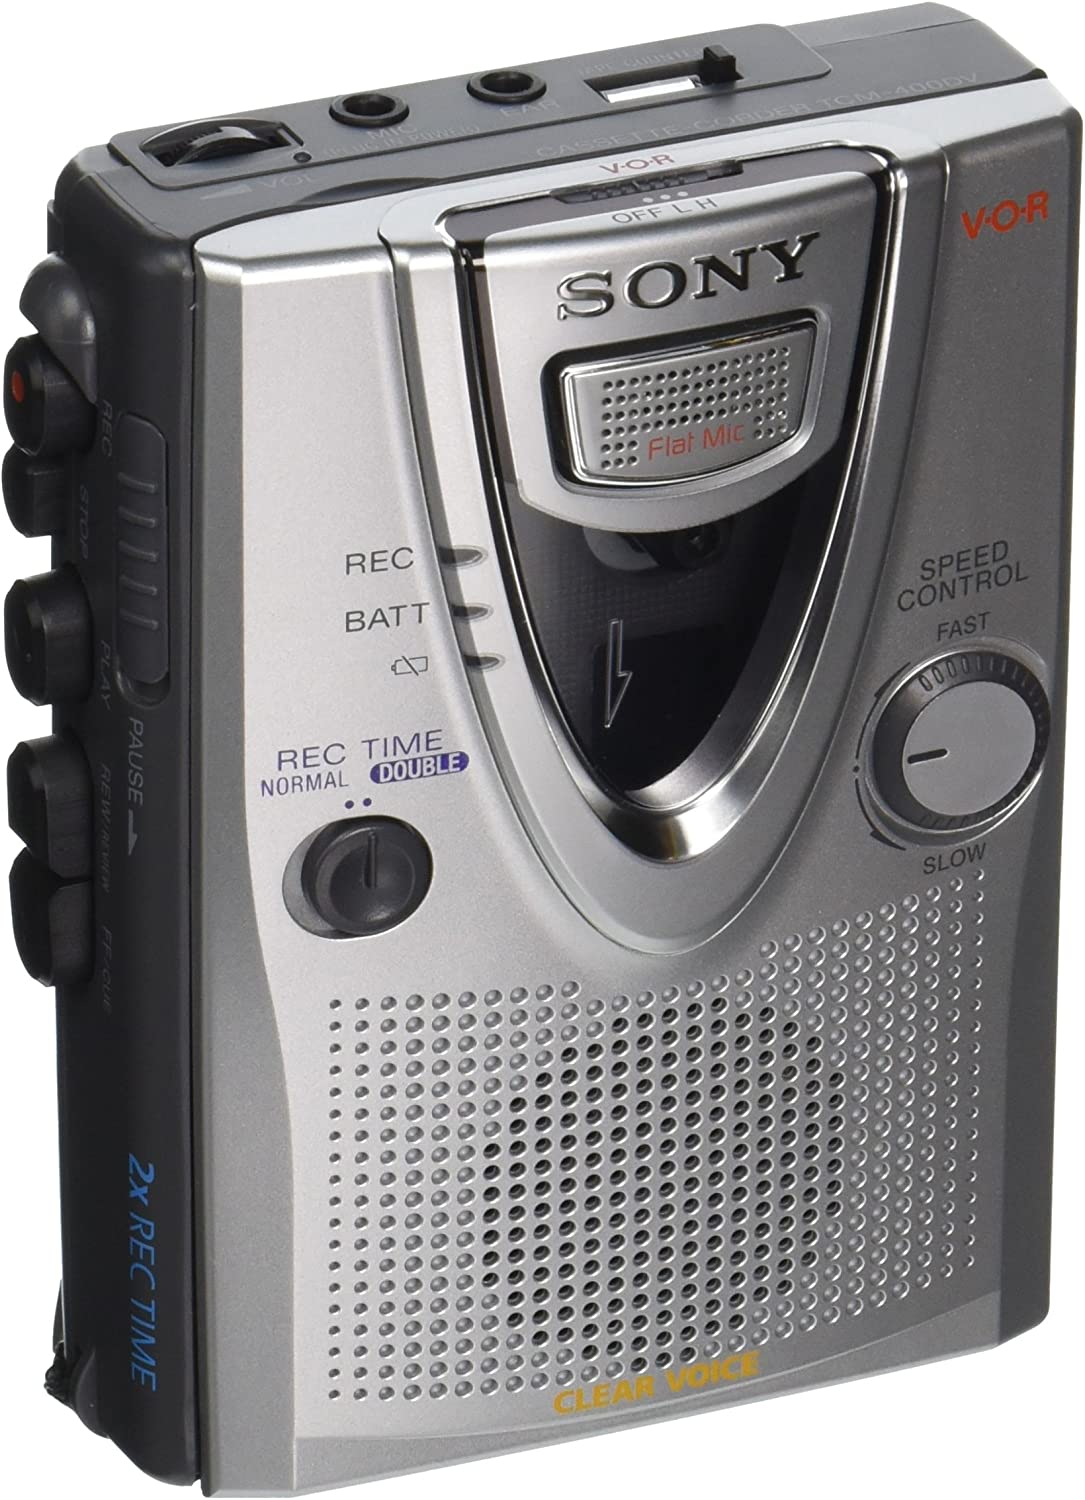 Sony TCM-400DV Clear Voice Cassette Recorder ~NEW WITHOUT PACKAGE~